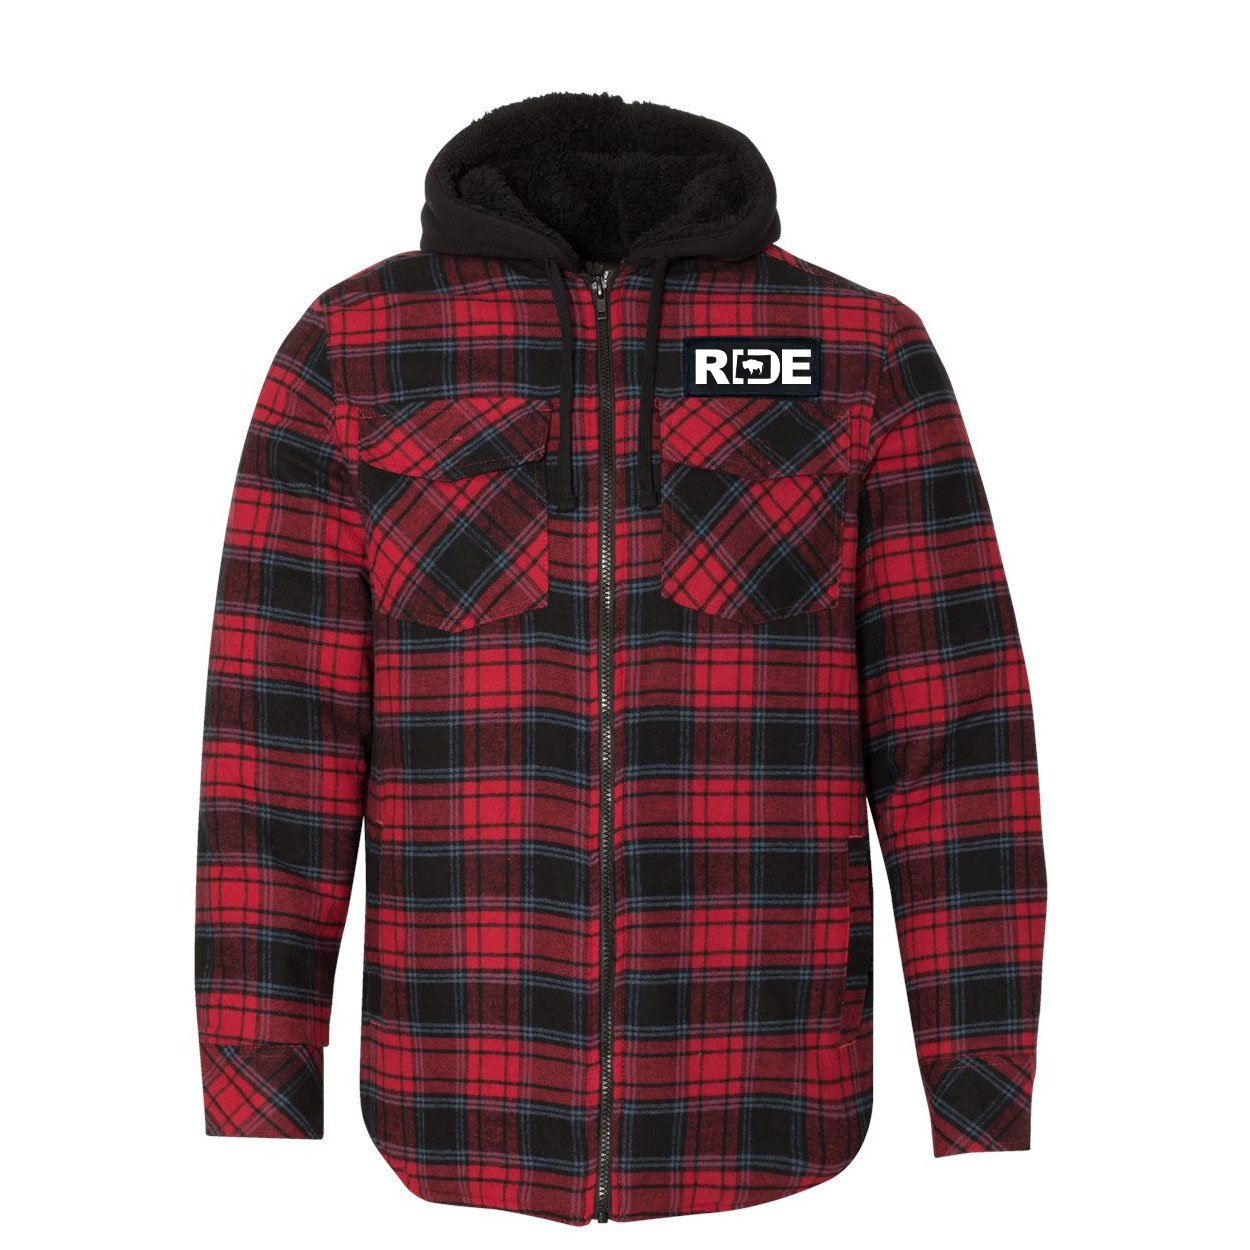 Ride Wyoming Classic Unisex Full Zip Woven Patch Hooded Flannel Jacket Red/Black Buffalo (White Logo)